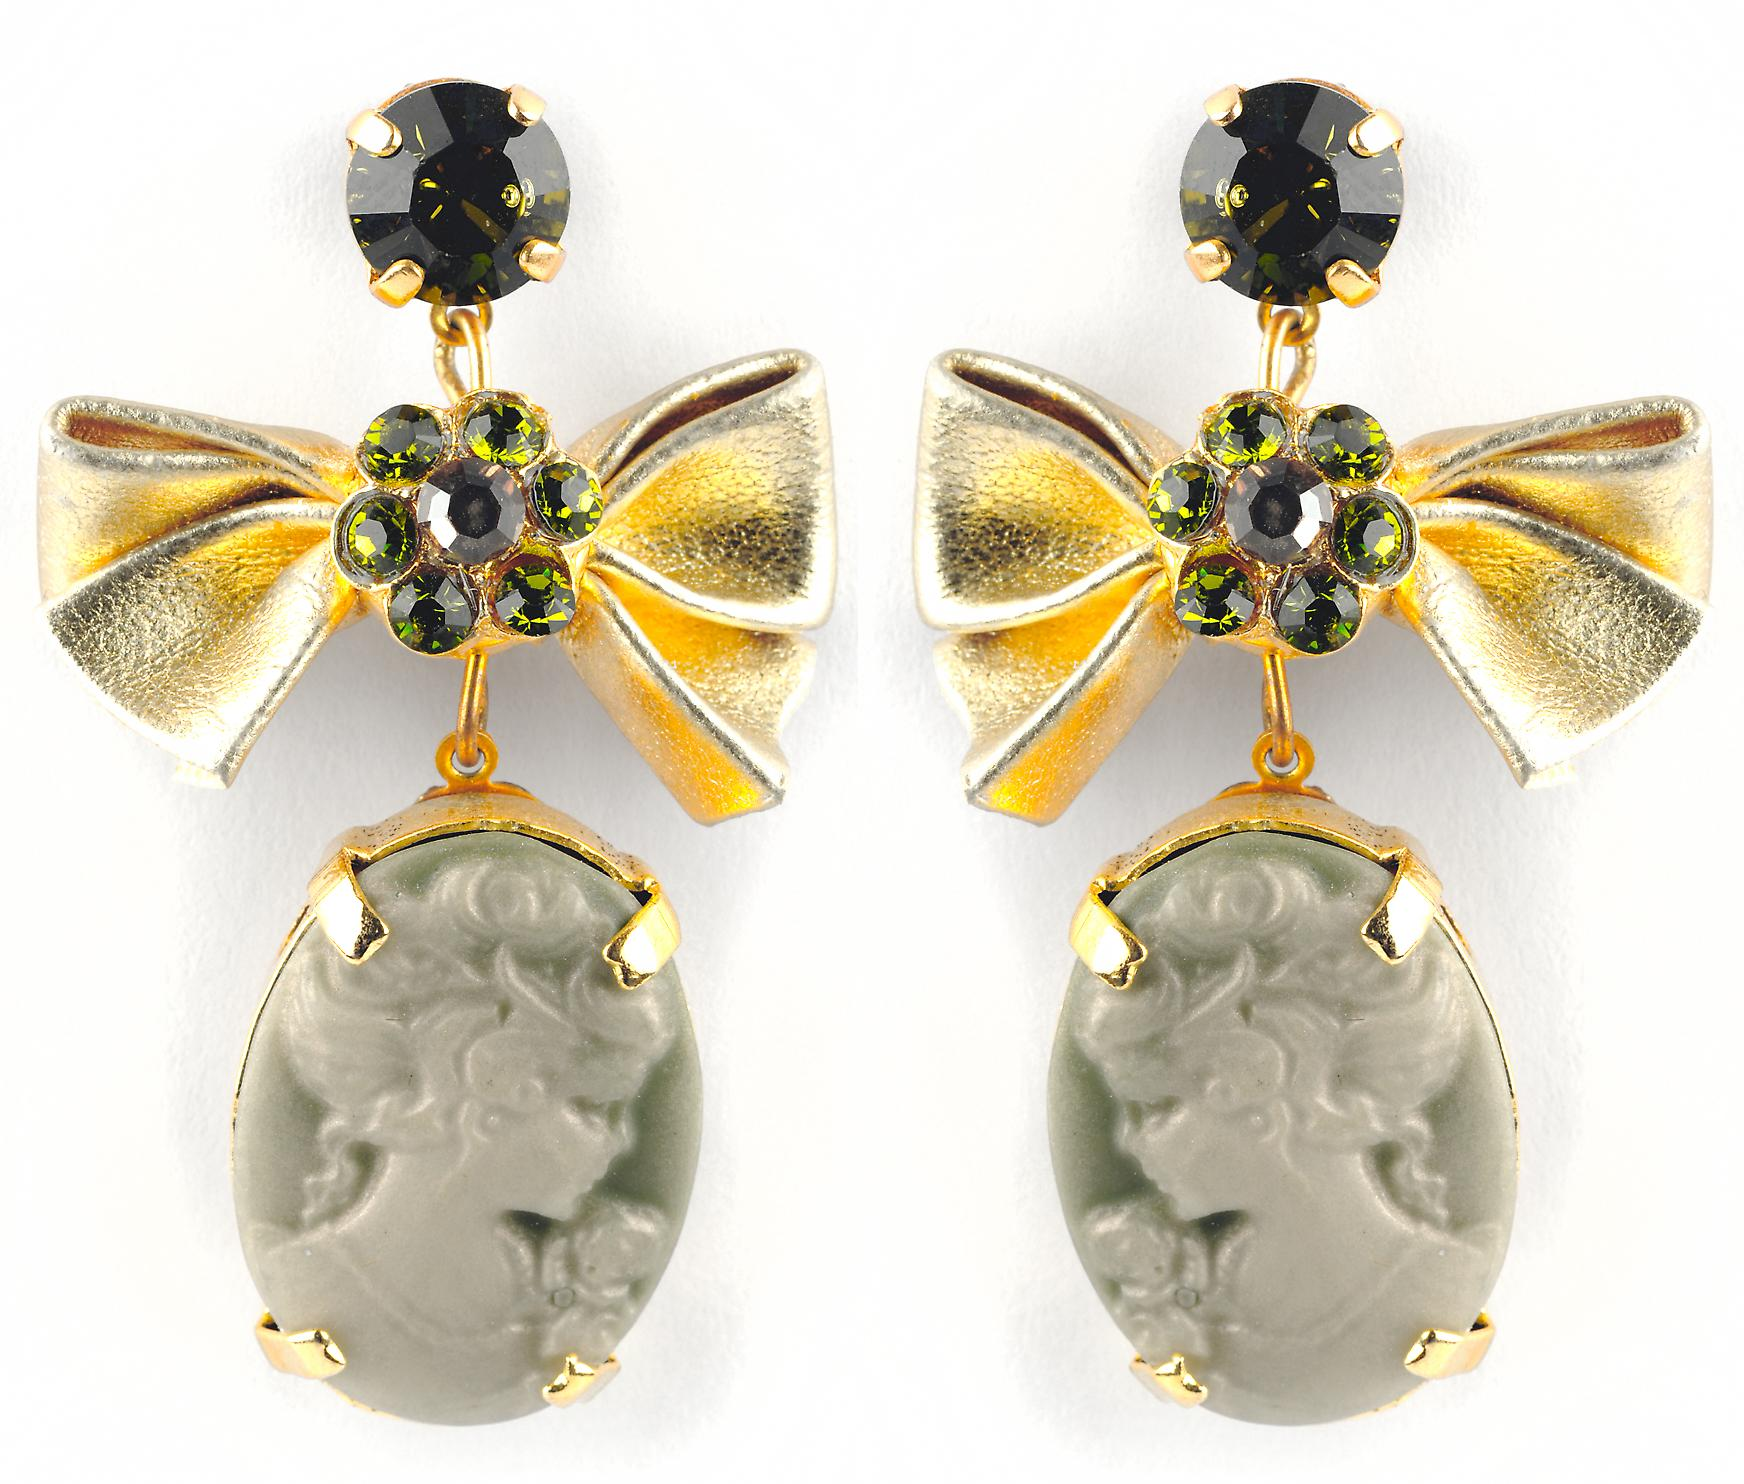 Waooh - Jewellery - WJ0690 - earrings with Swarovski Strass Green - Frame Color Gold - Pendant Face